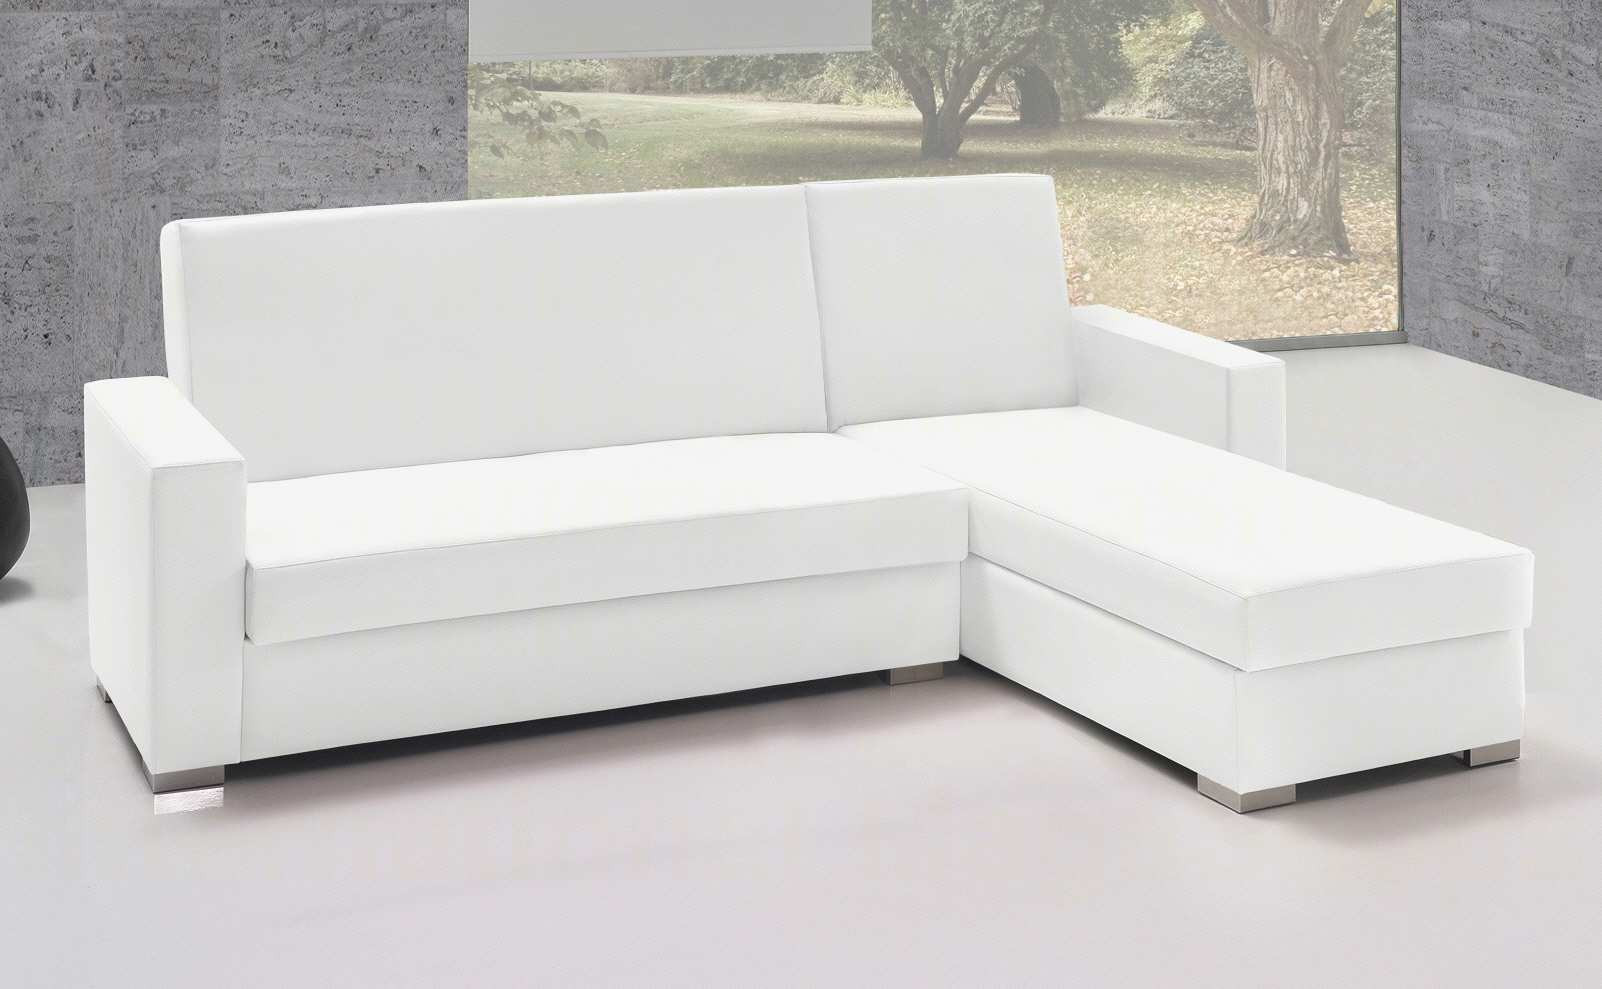 Chaise Longue Cama Baratos Magnífica sofa Cama Chaise Longue Barato Madrid Of Chaise Longue Cama Baratos Contemporáneo sofás Con Chaise Longue sofás Modernos